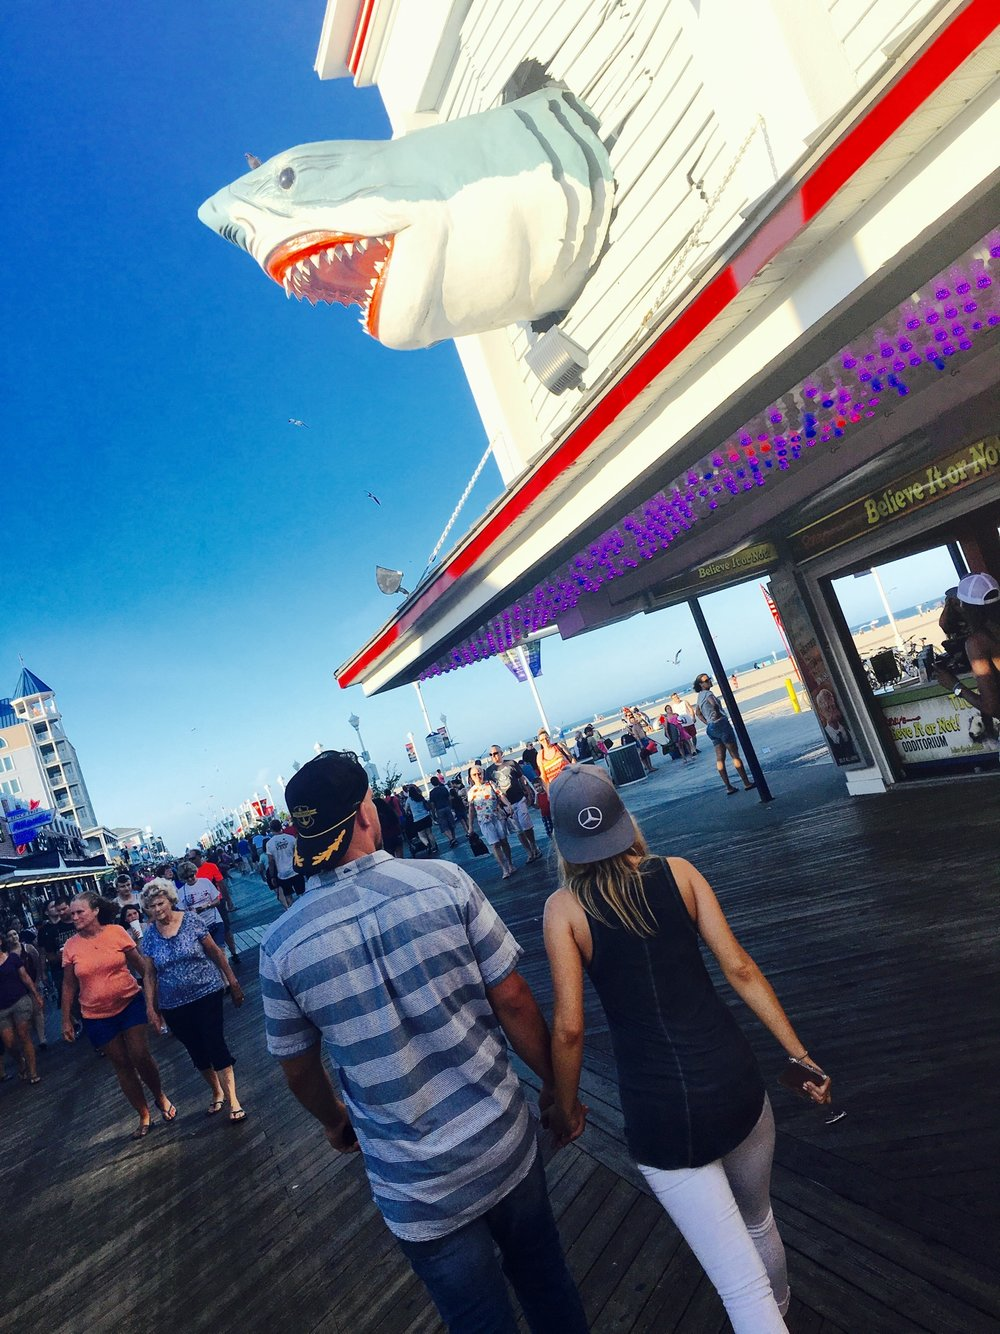 We're walking the boards in Ocean City, Maryland in front of Ripley's Believe it or Not!